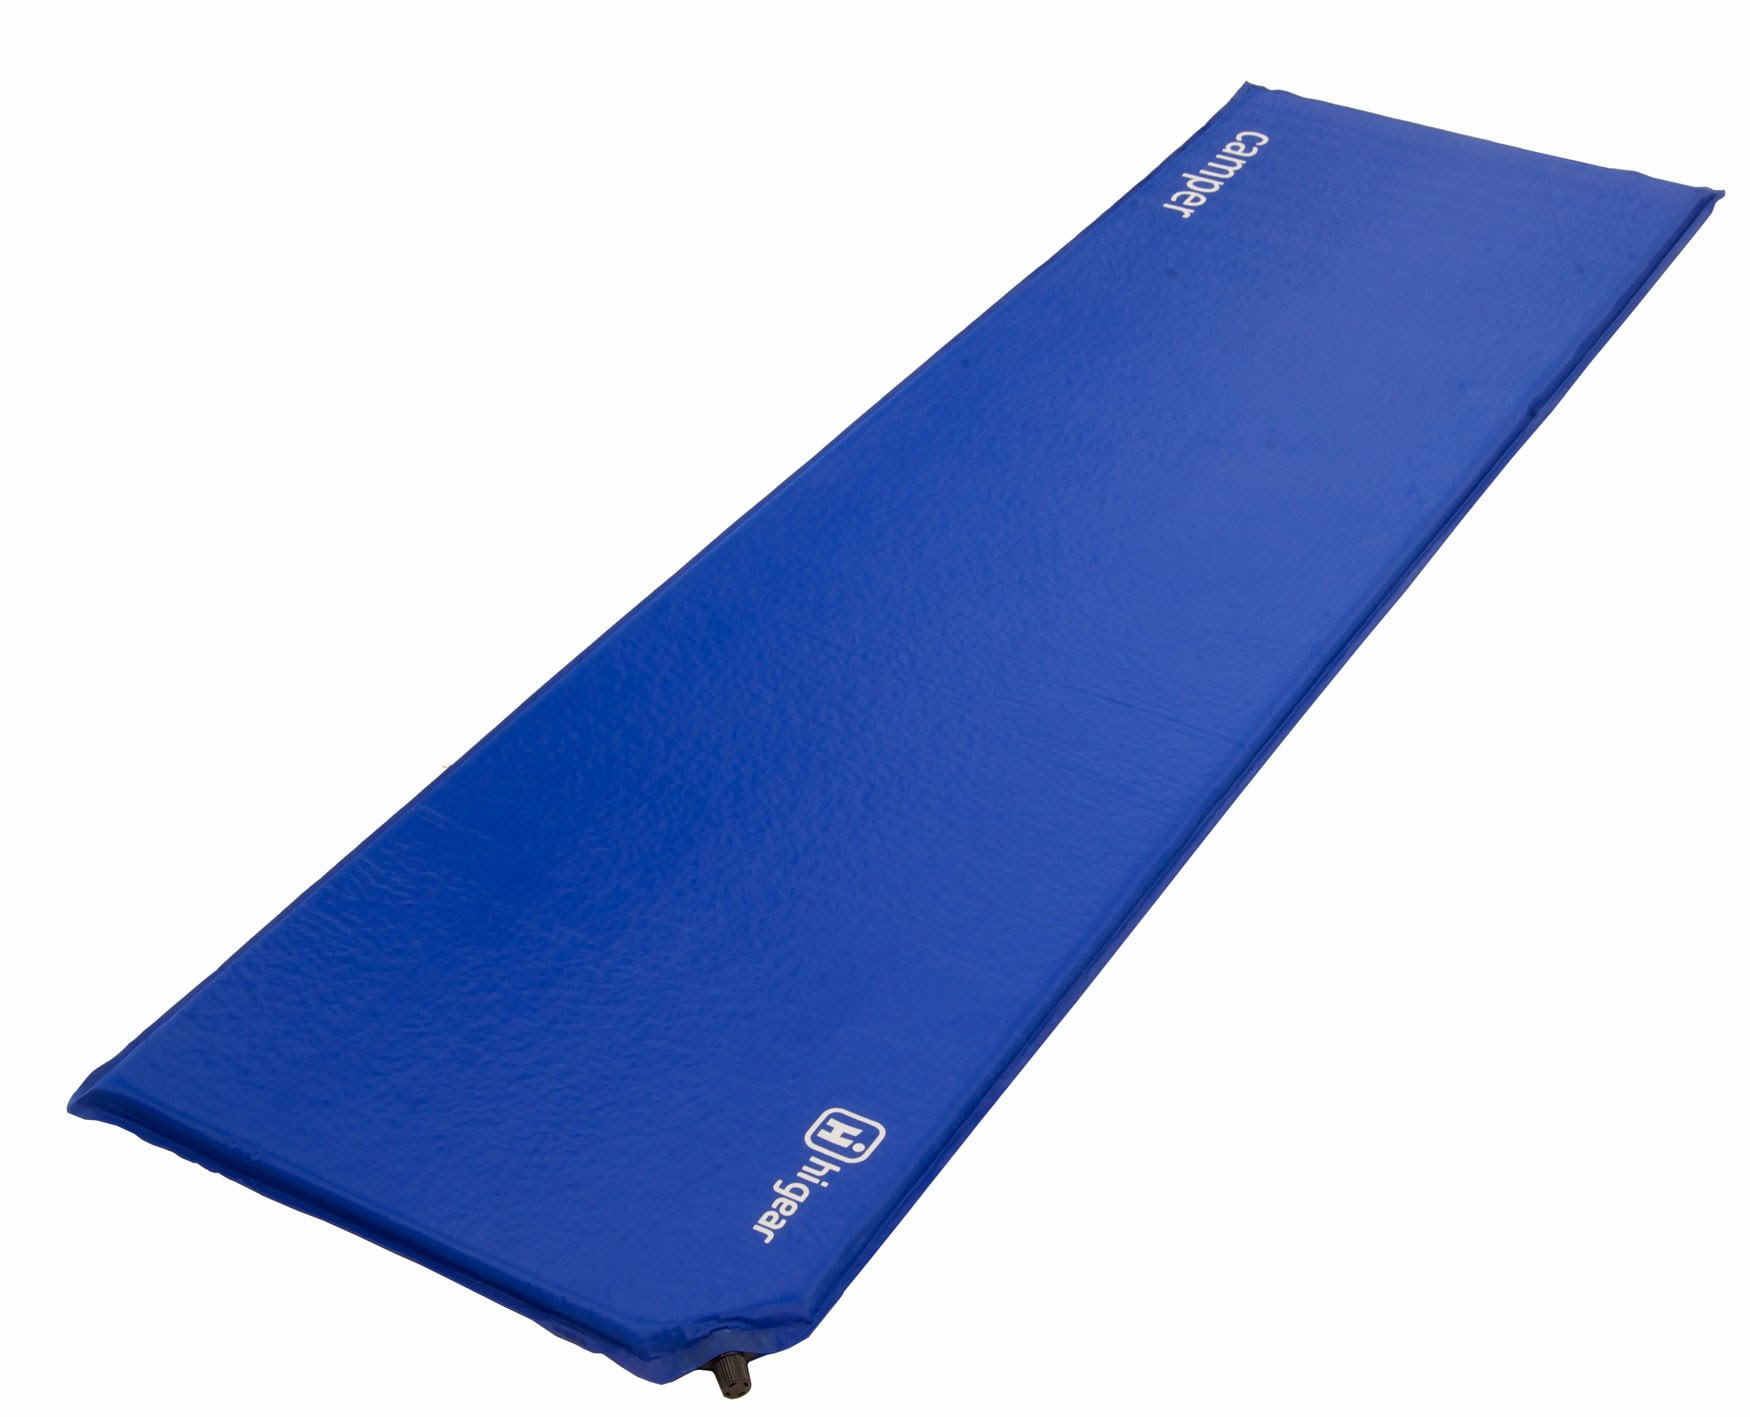 Image result for Hi Gear Camper self-inflating mat